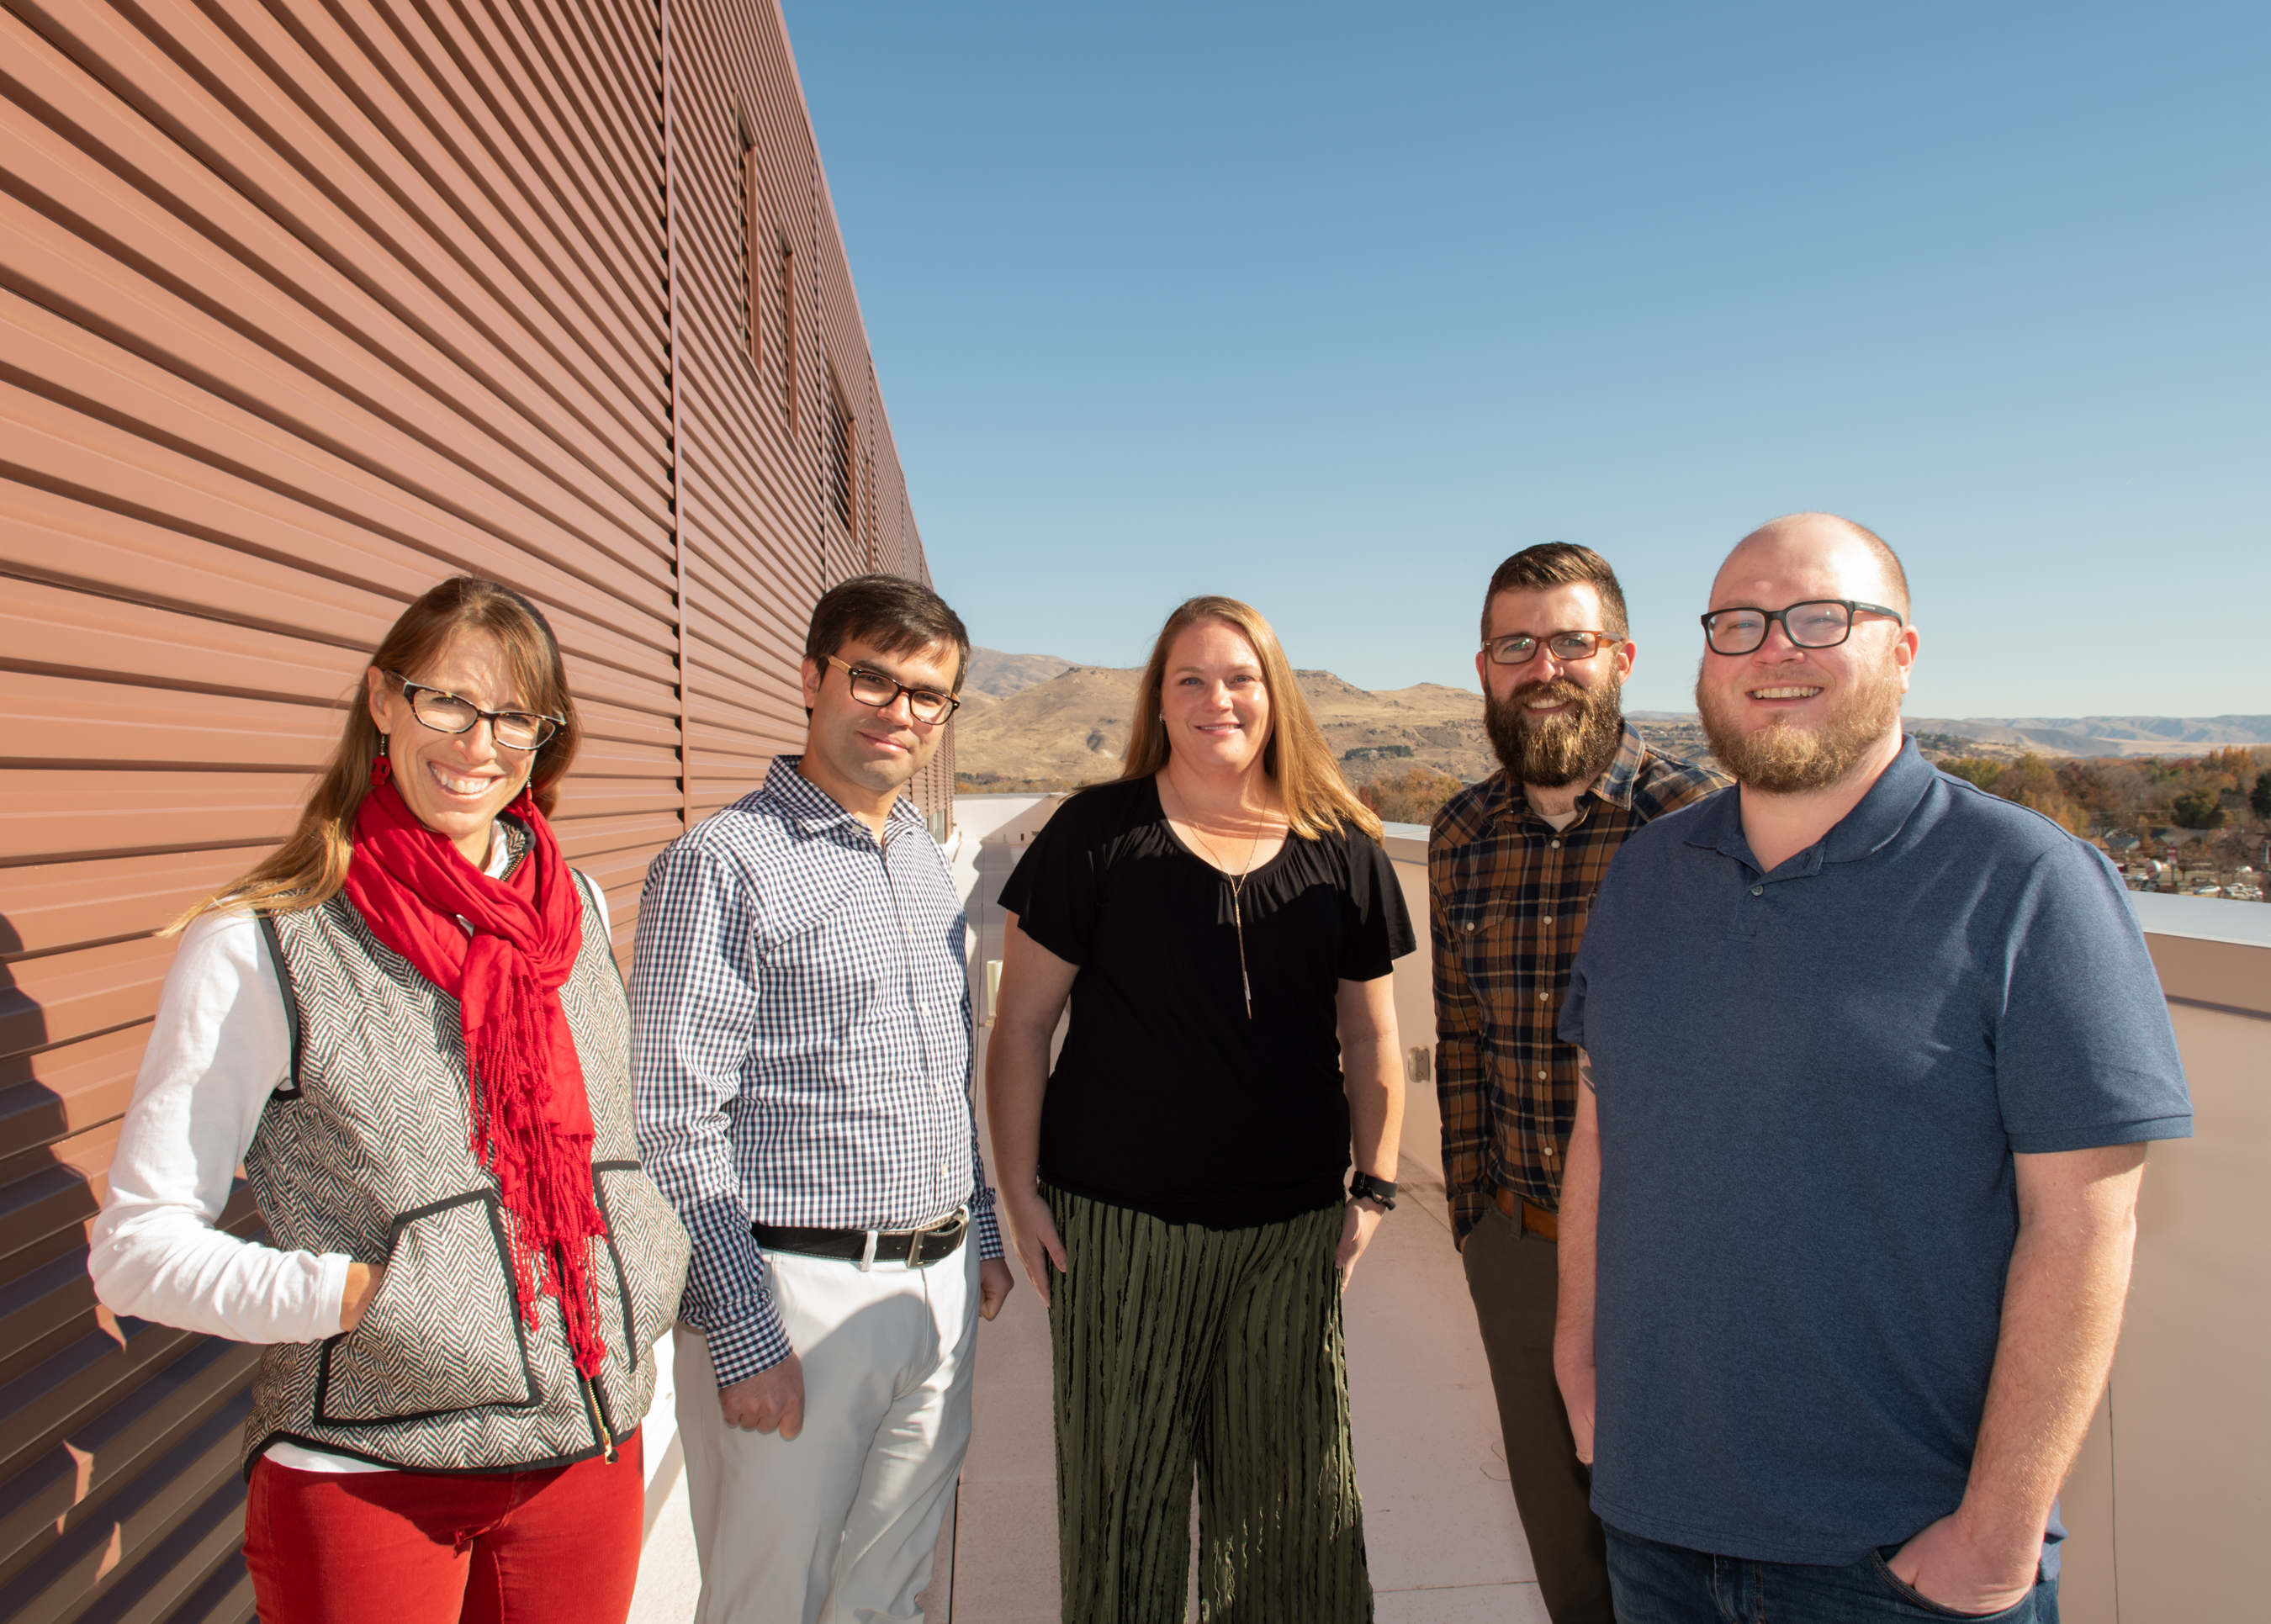 Group photo of interdisciplinary team on rooftop